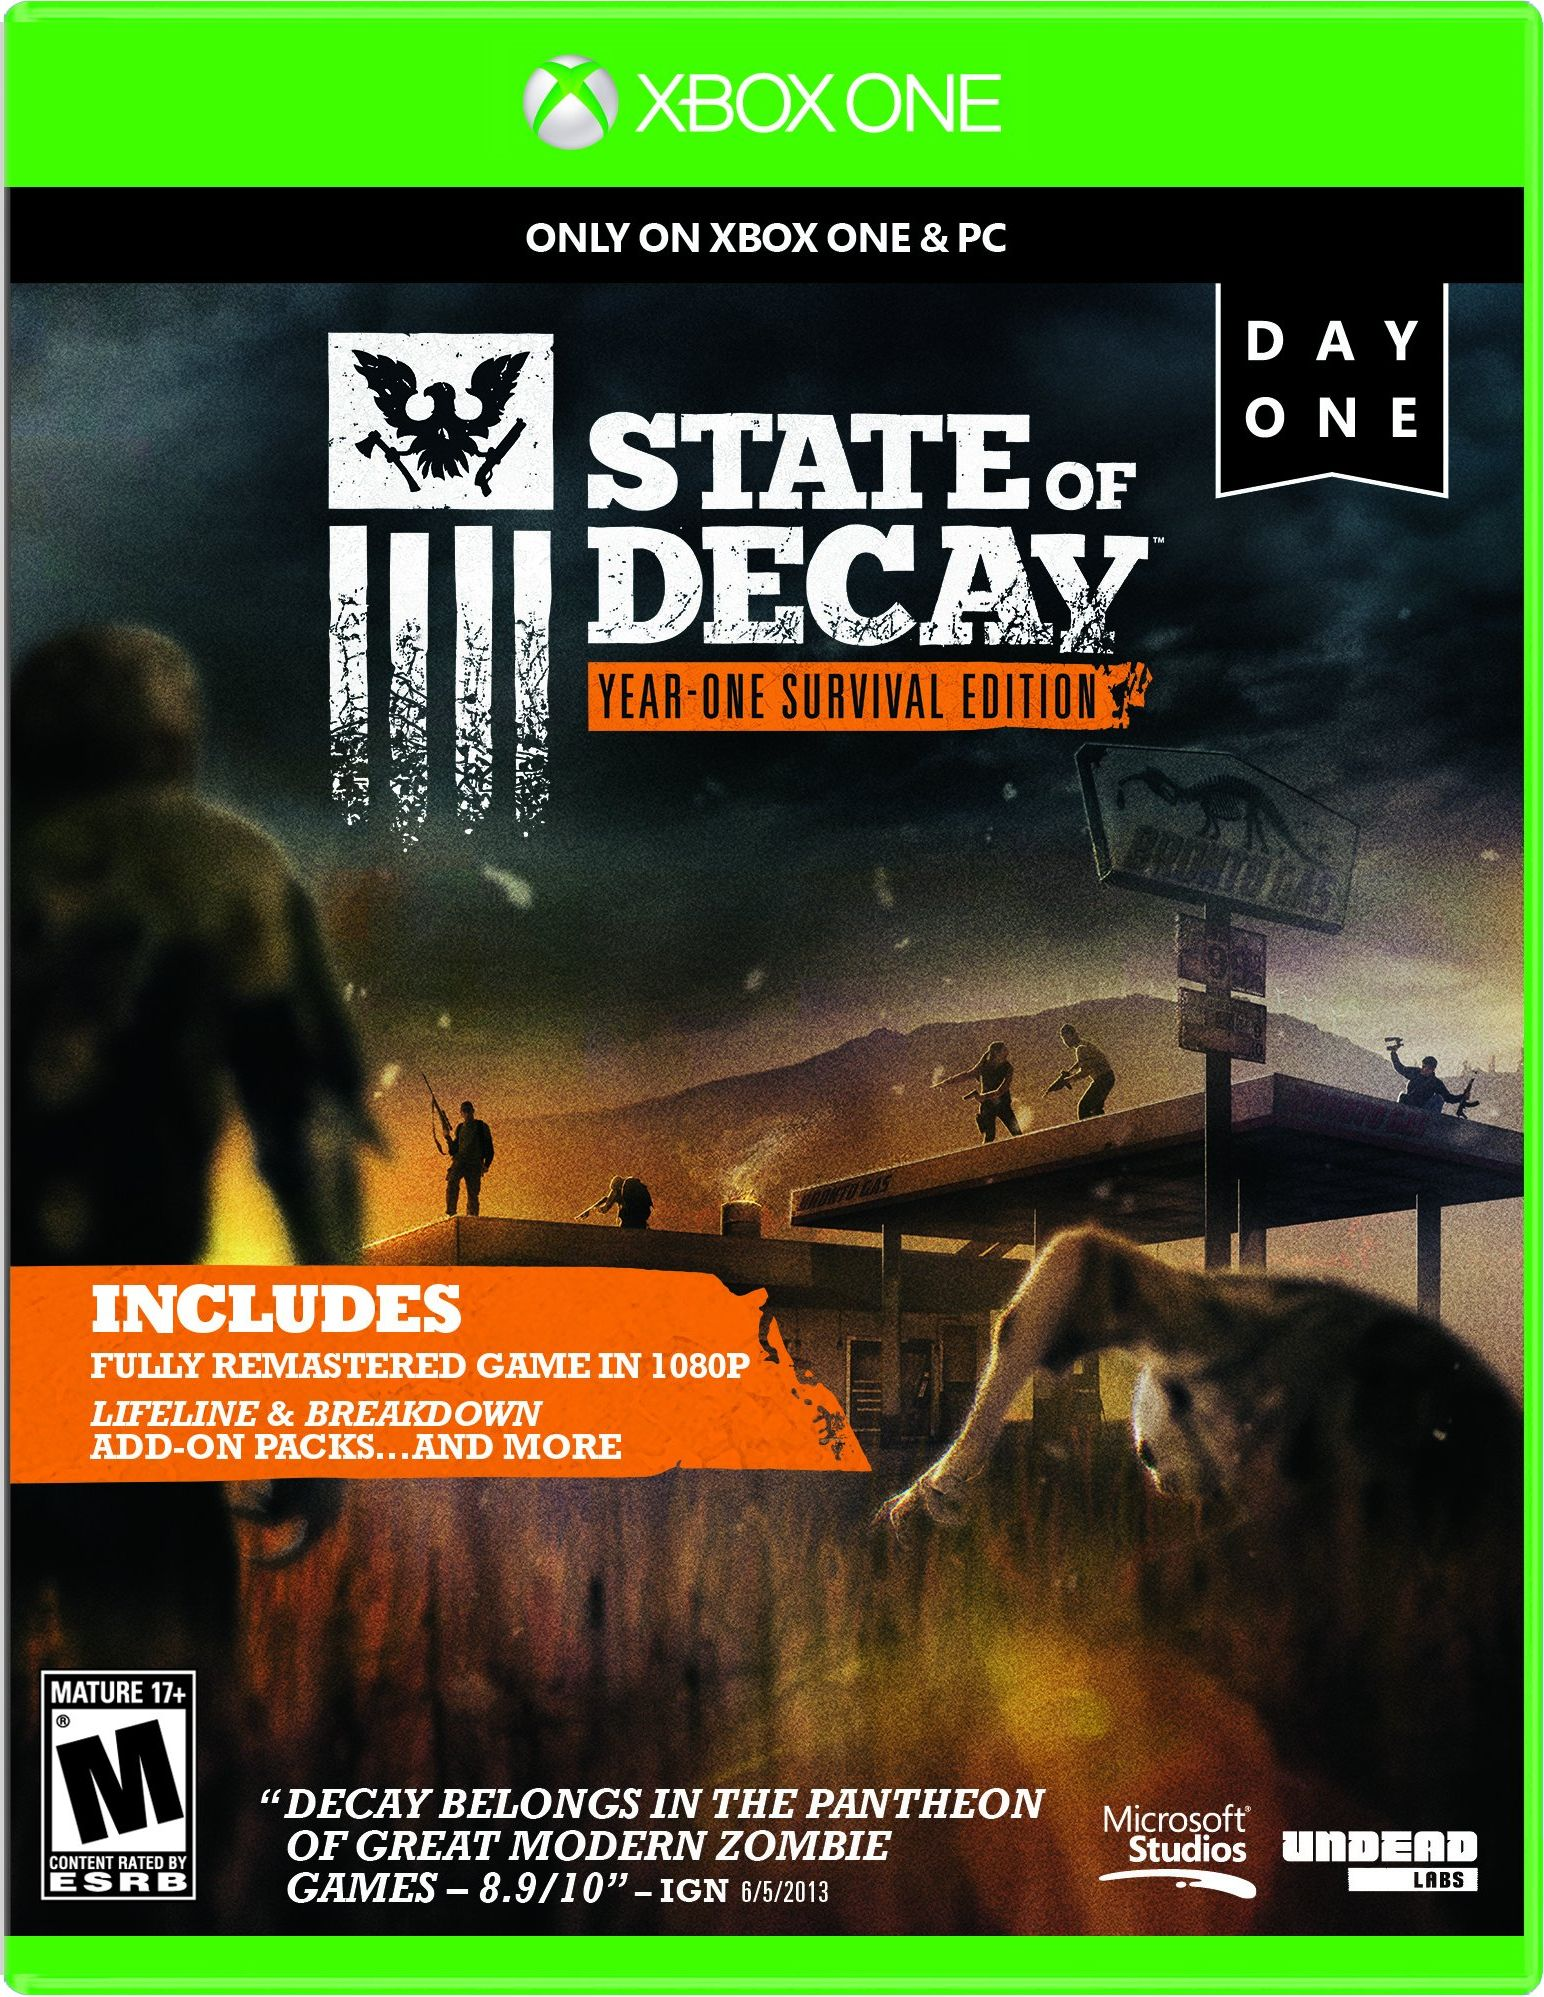 Xbox One Release Games : State of decay release date xbox one